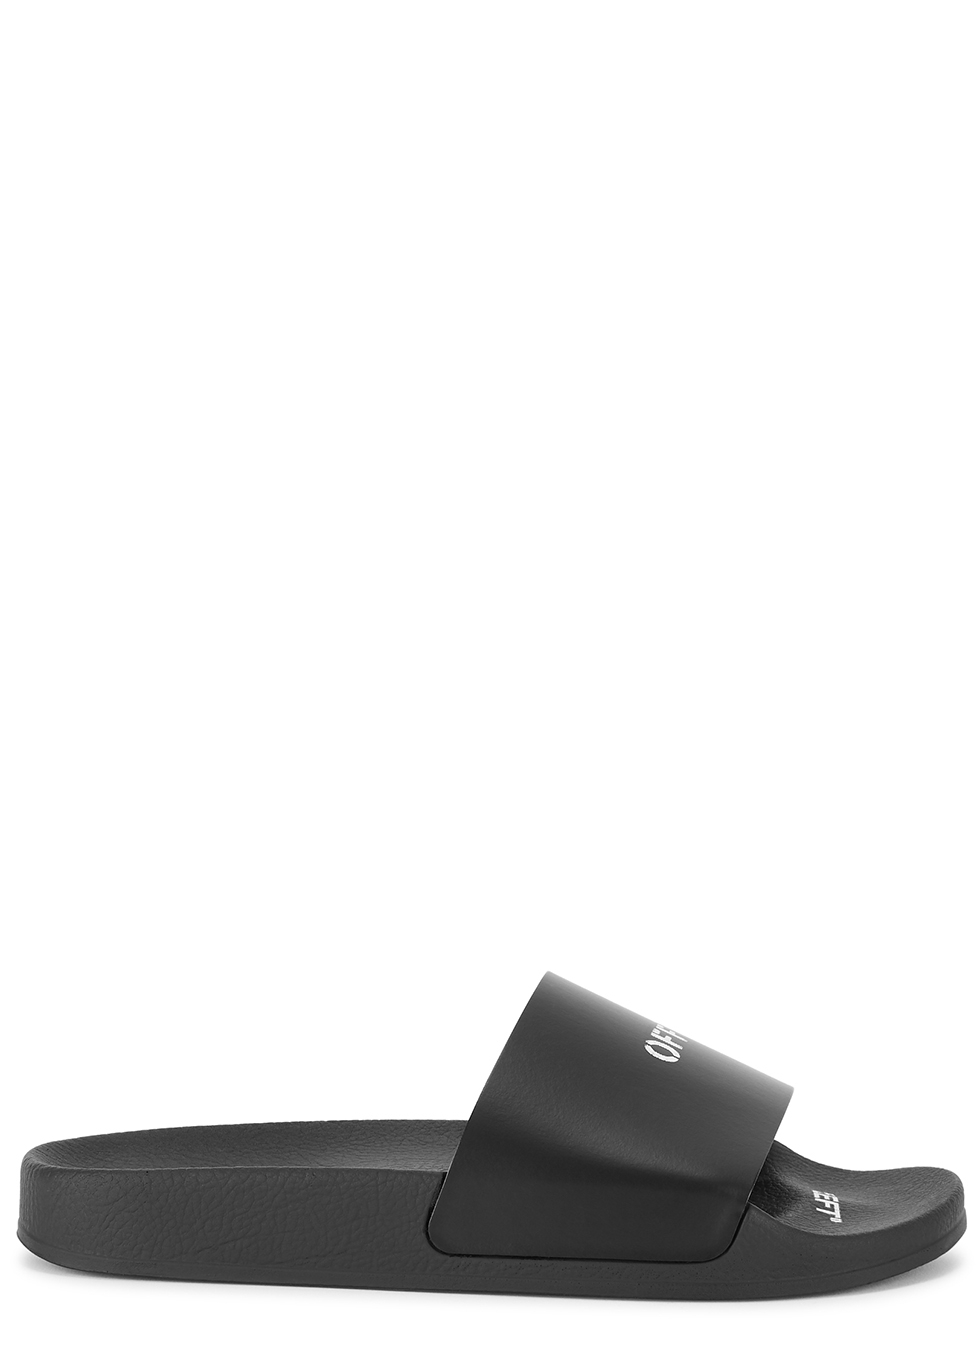 Black logo-print sliders